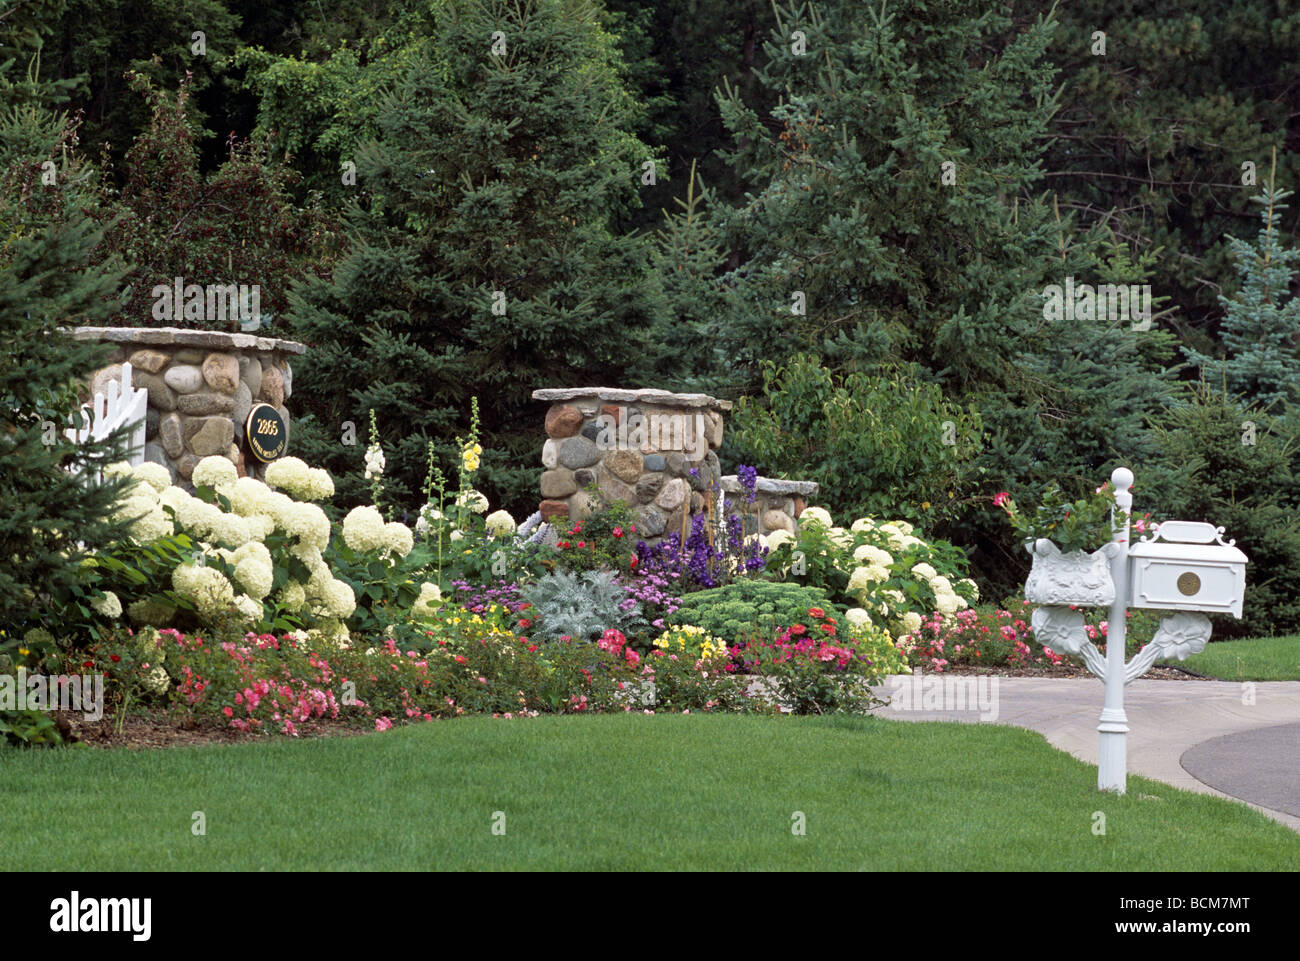 FRONT ENTRANCE GATE POSTS AND MAILBOX OF SUBURBAN MINNEAPOLIS, MINNESOTA  HOME WITH BORDER GARDEN OF PERENNIALS. SUMMER